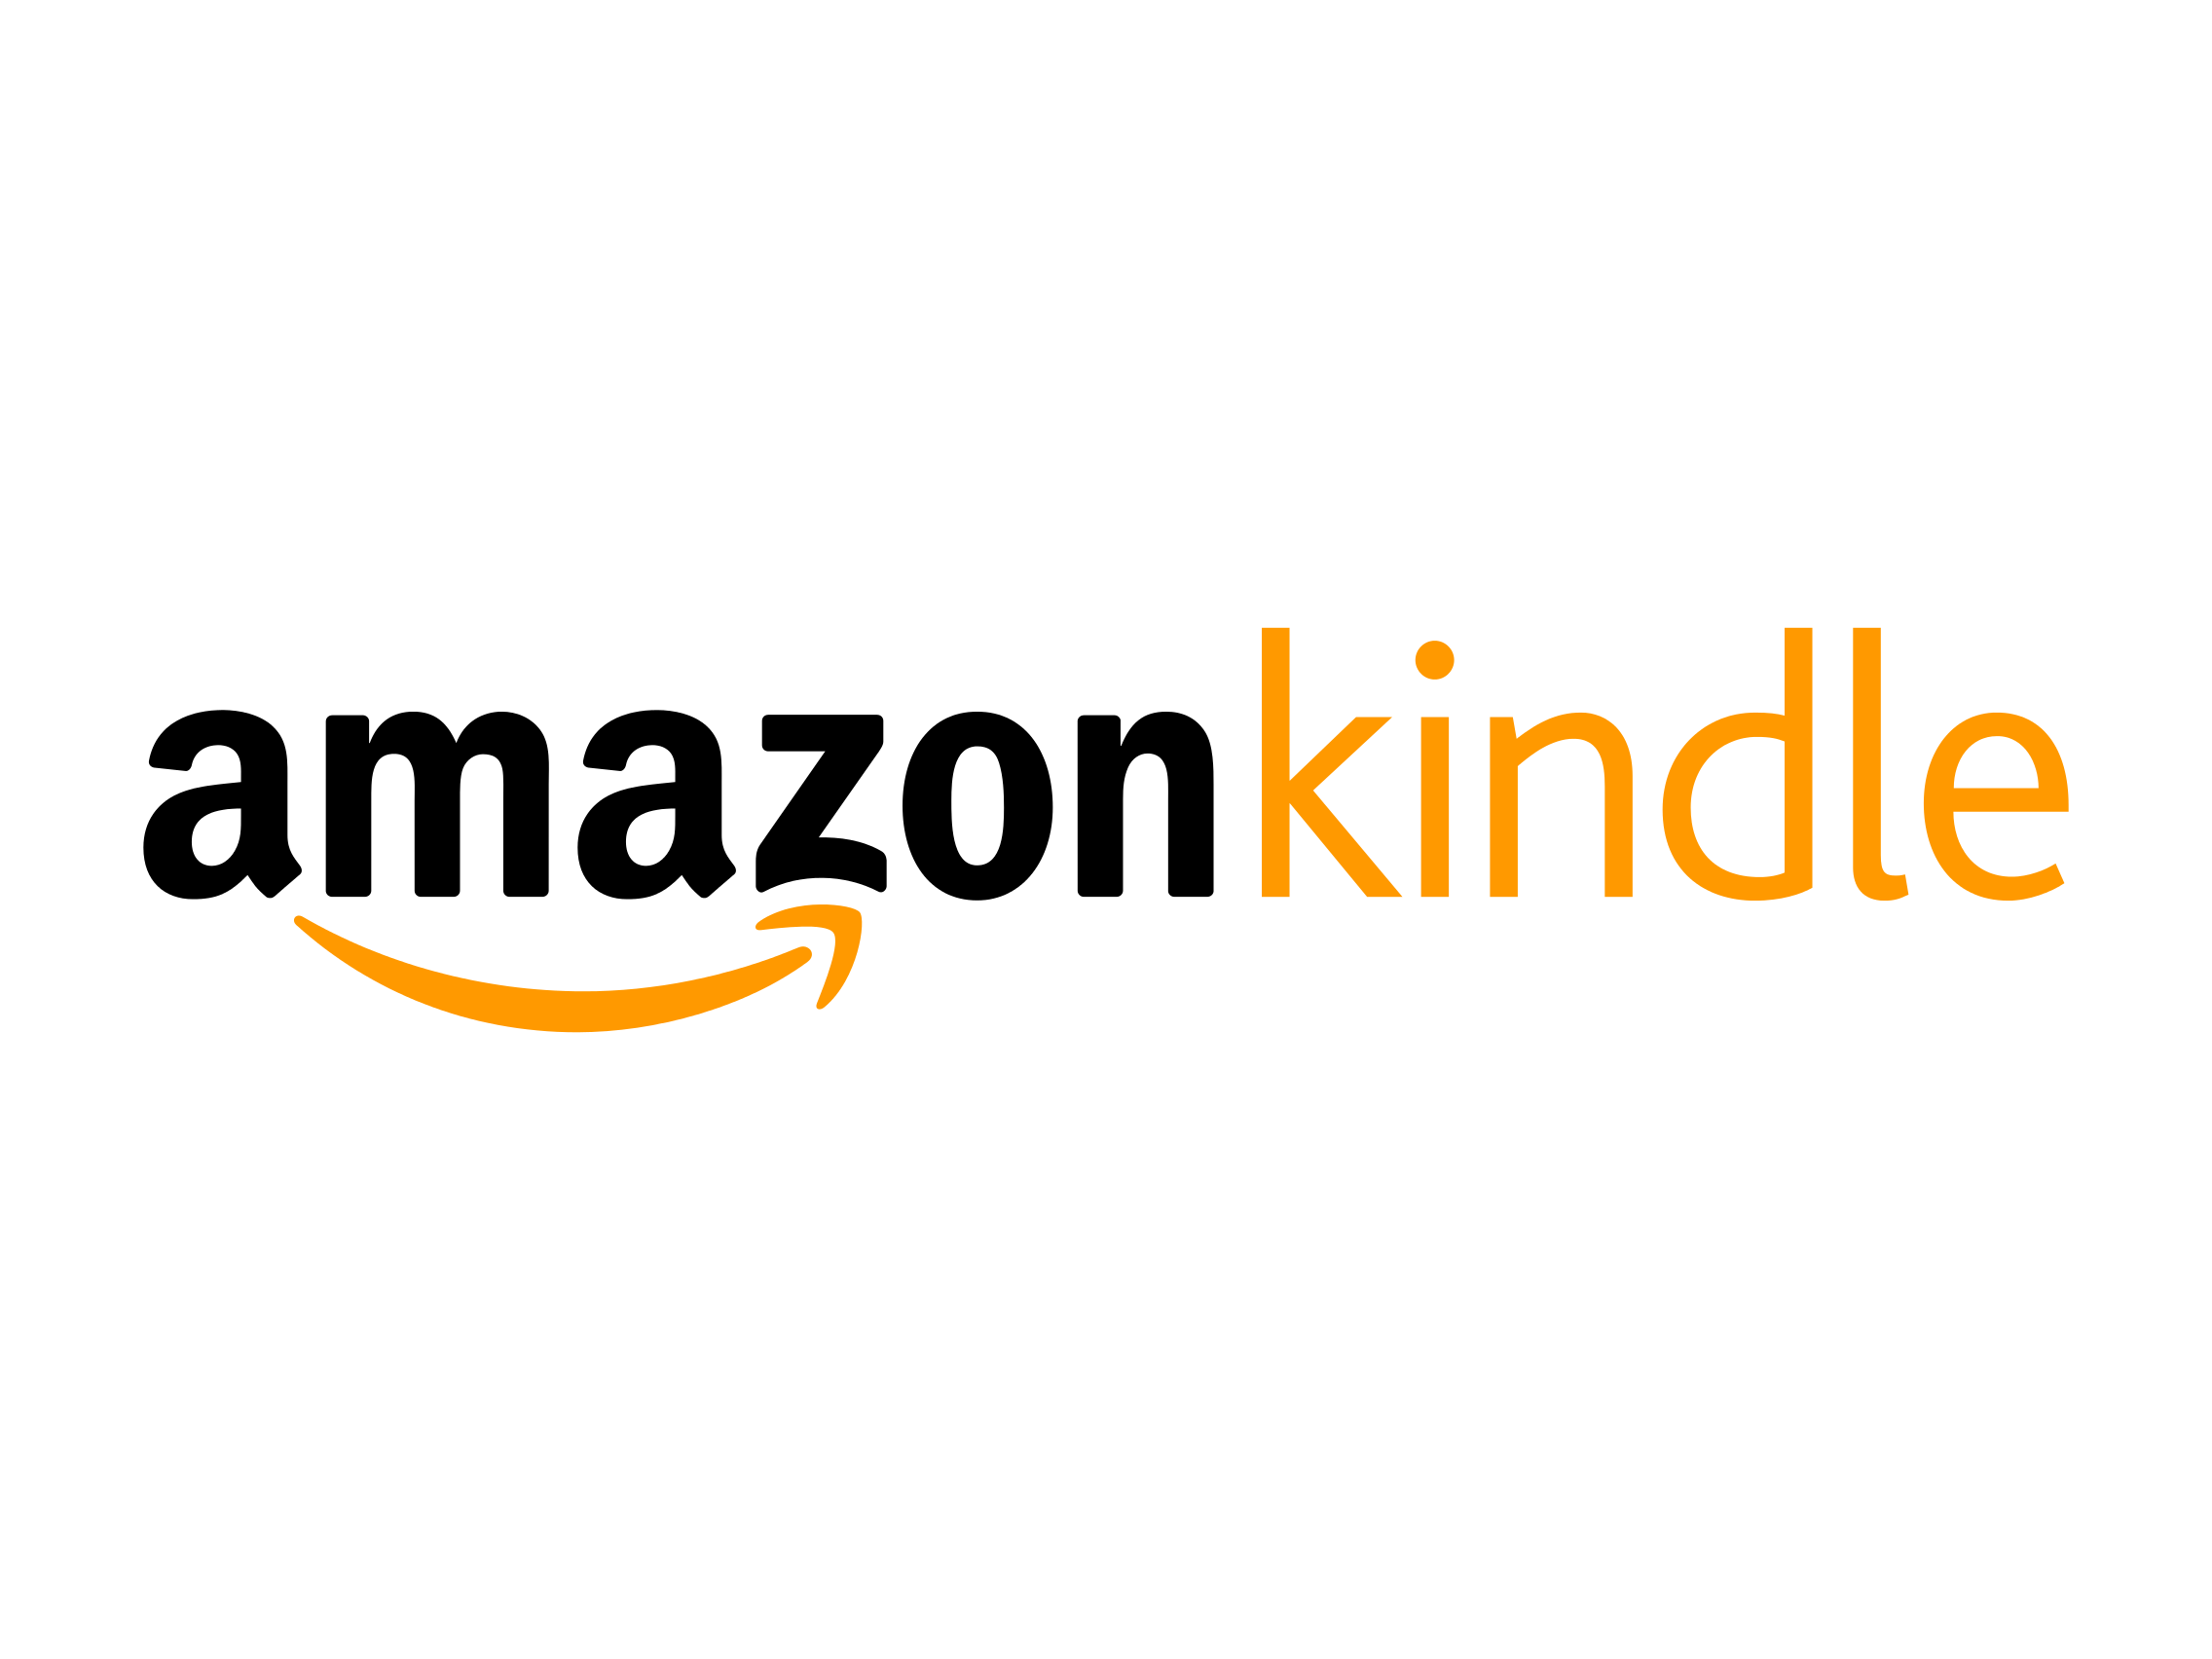 amazon-kindle-png-png-2272x1704.png